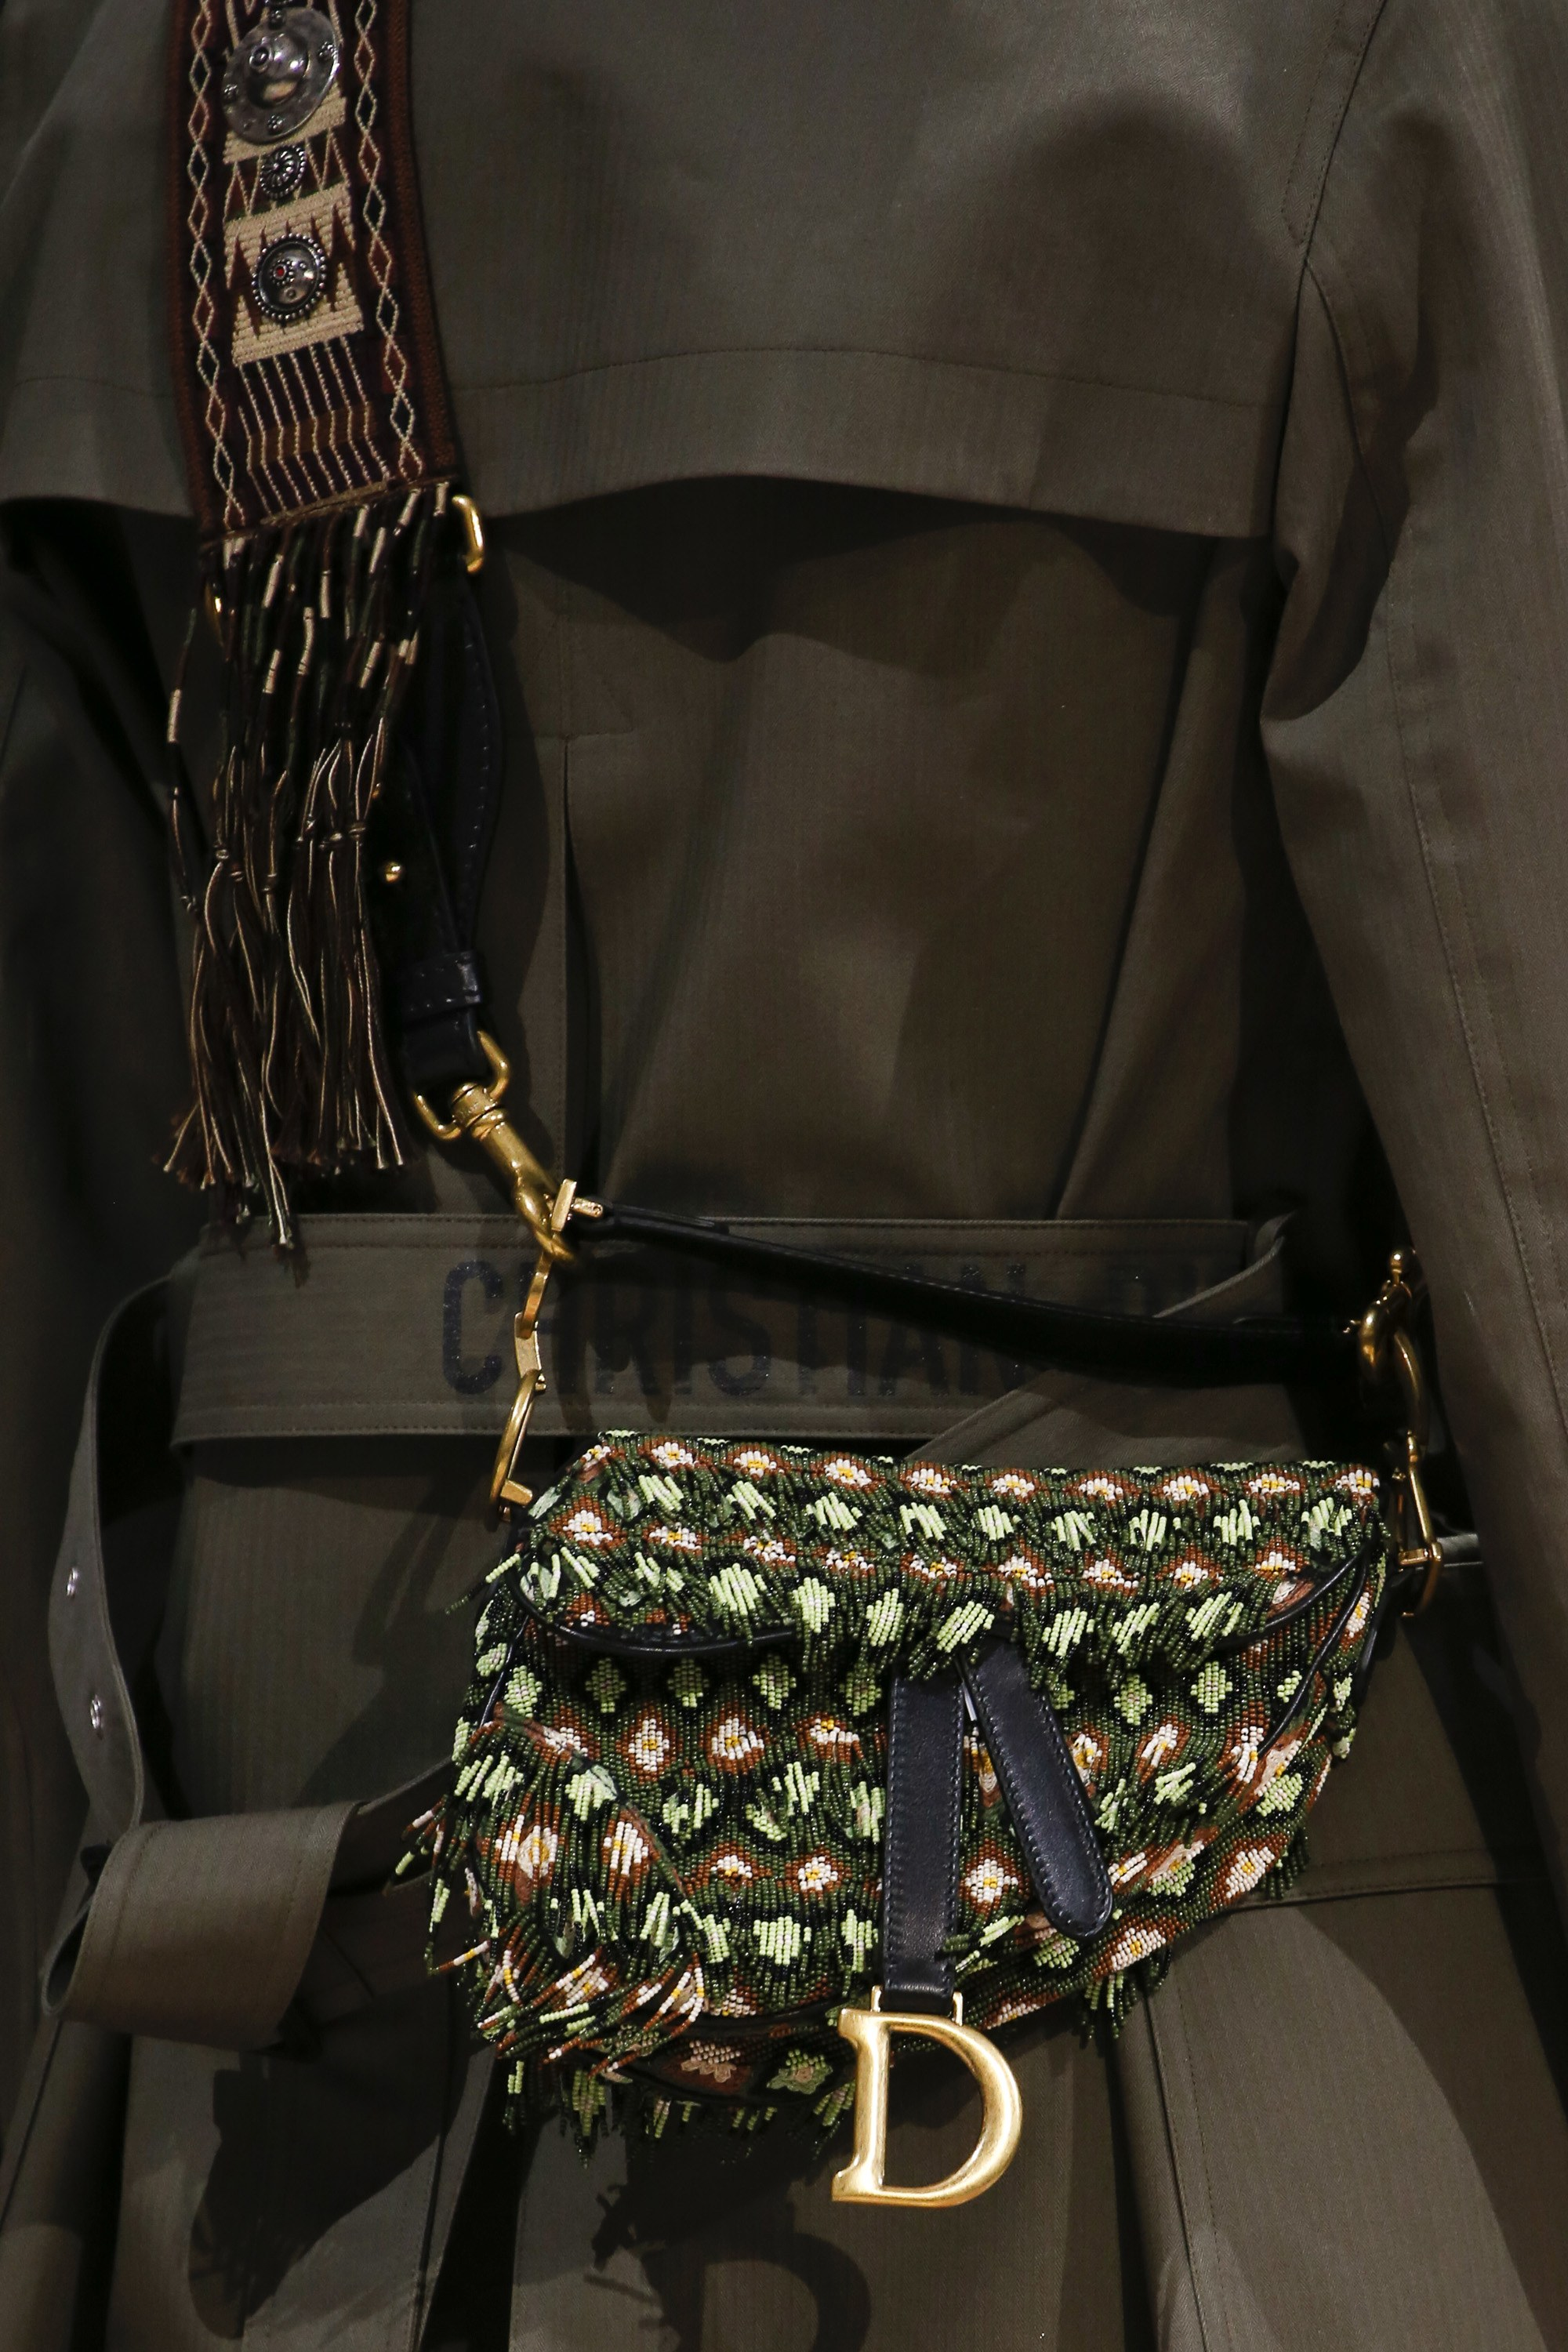 bfc7afda4b Dior Fall/Winter 2018 Runway Bag Collection featuring Saddle Bags ...